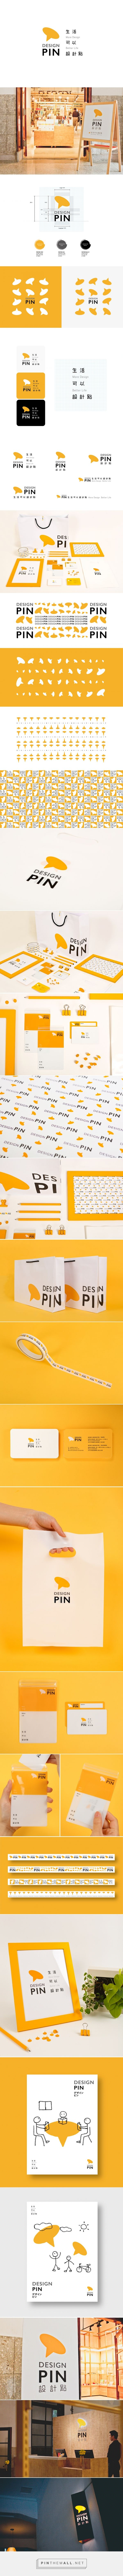 Design Pin Branding on Behance... - a grouped images picture - Pin Them All